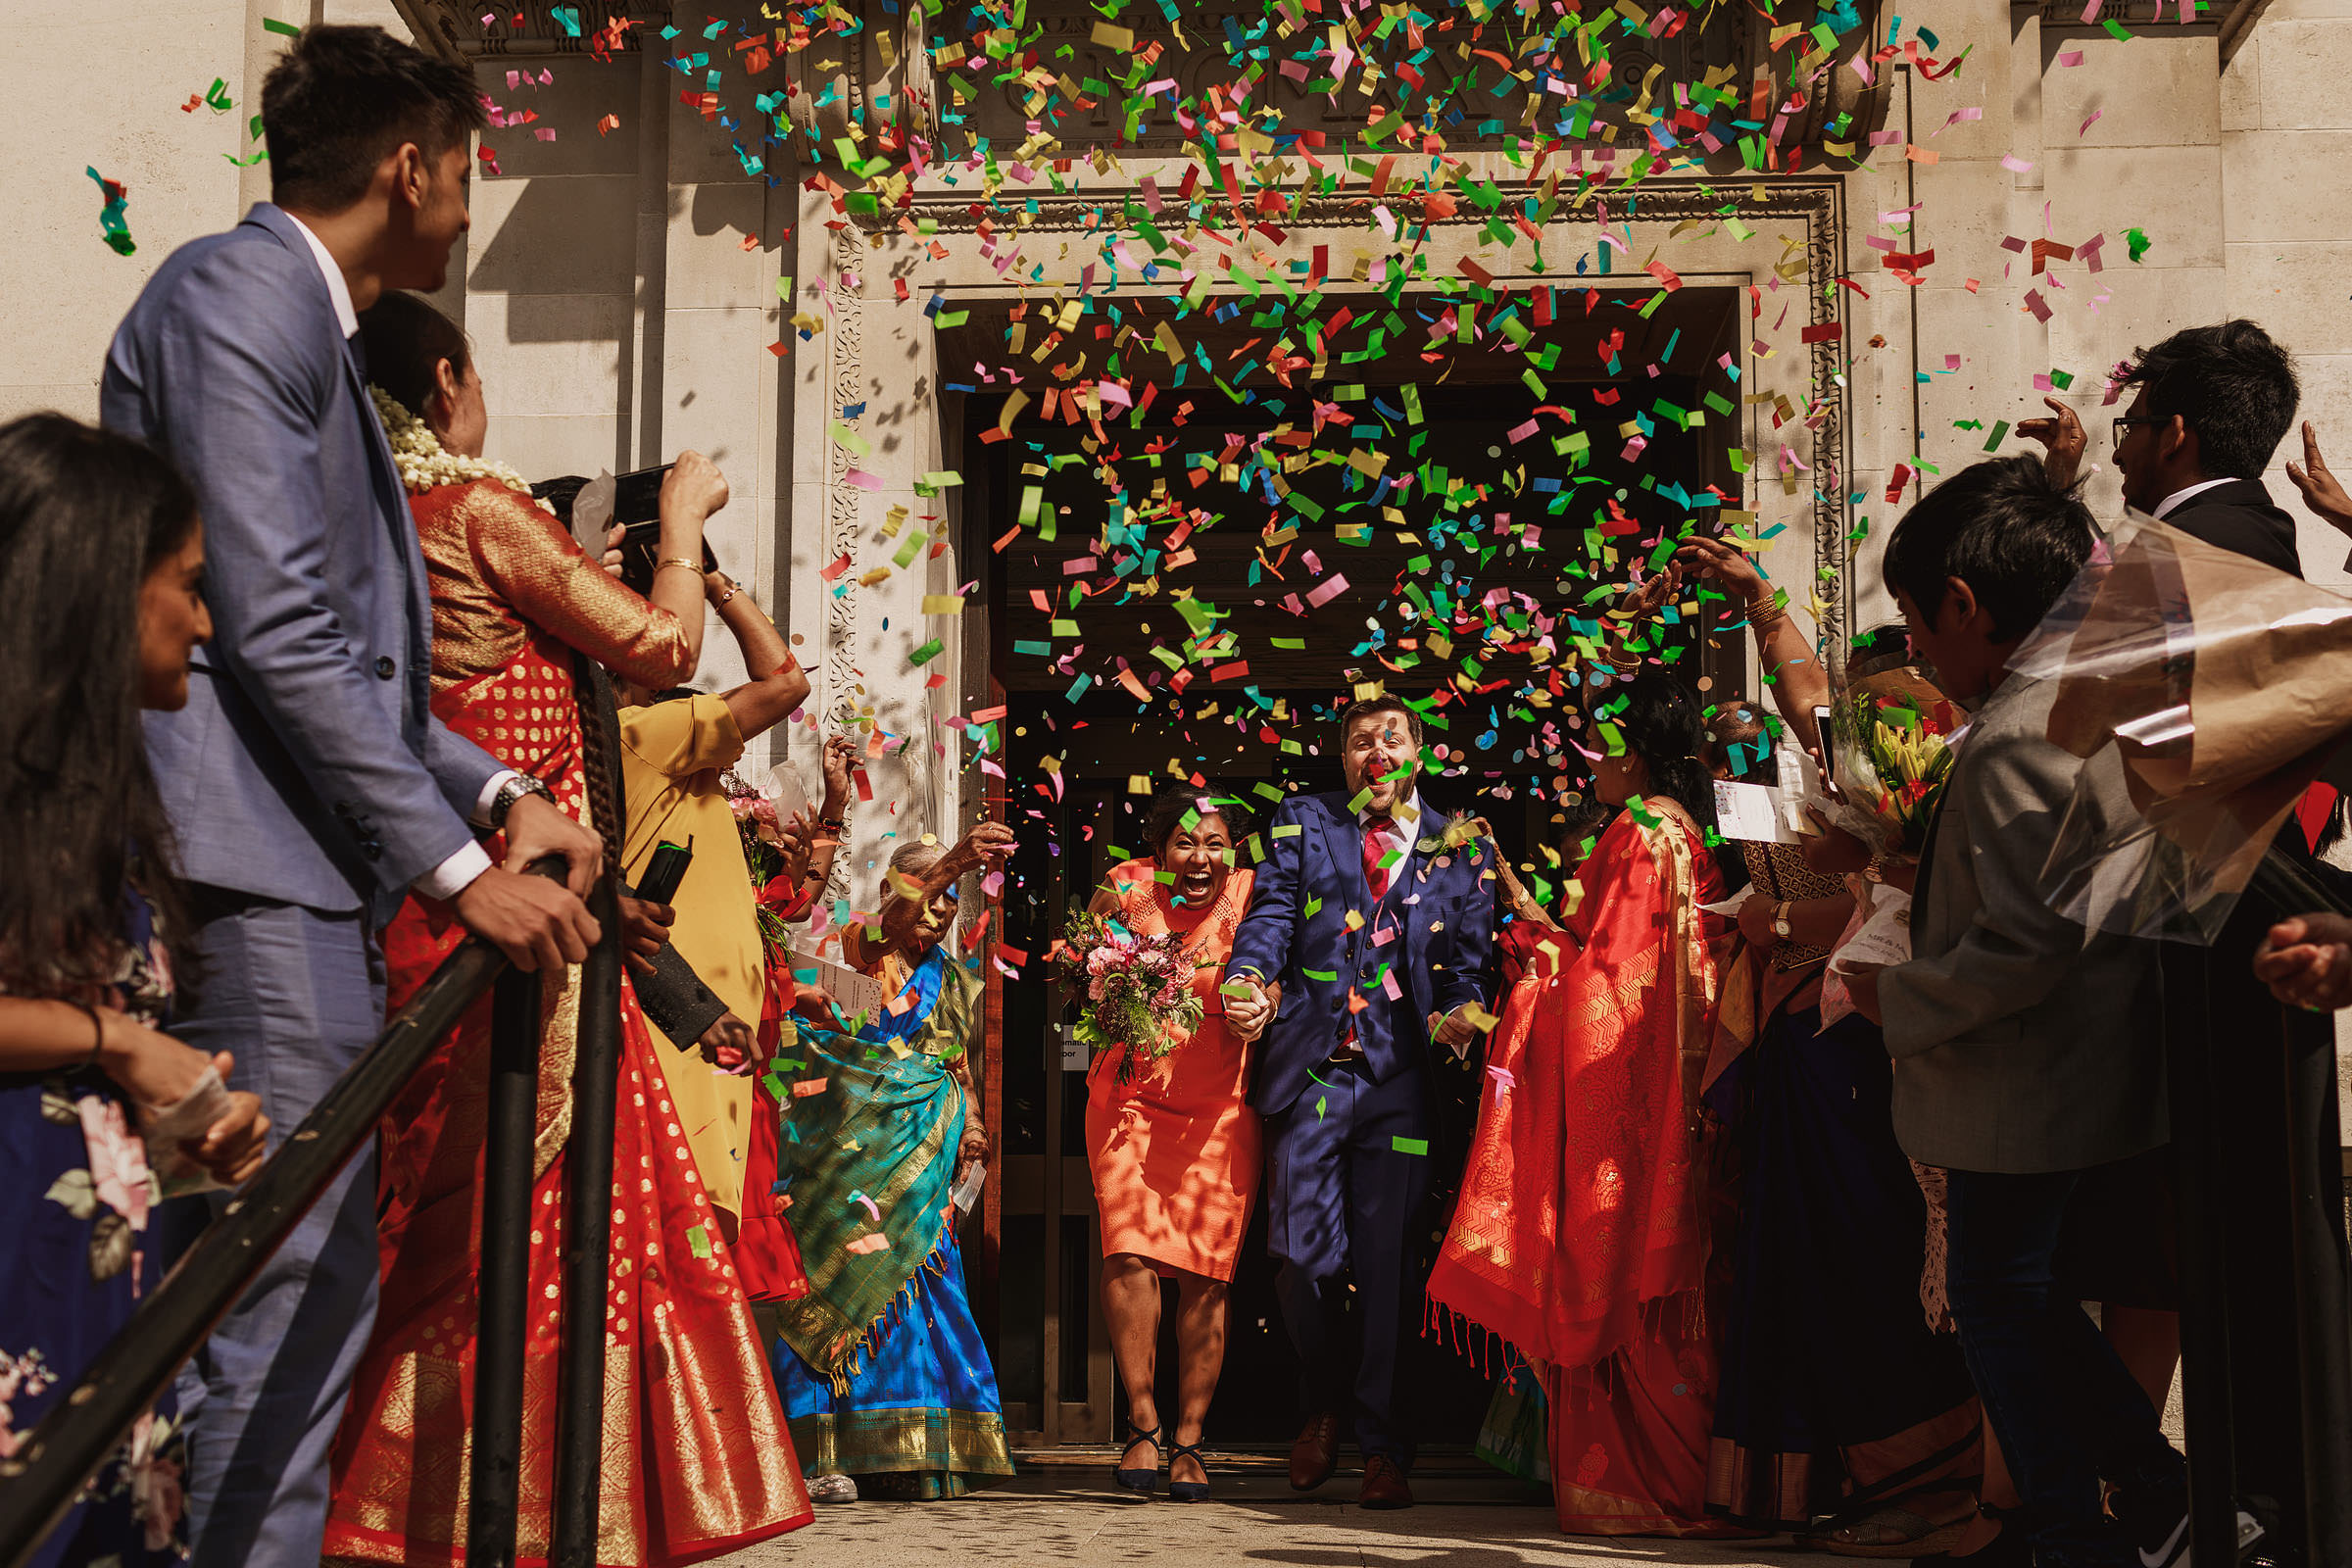 Couple exits under colorful confetti photographed by f5 Photography - London